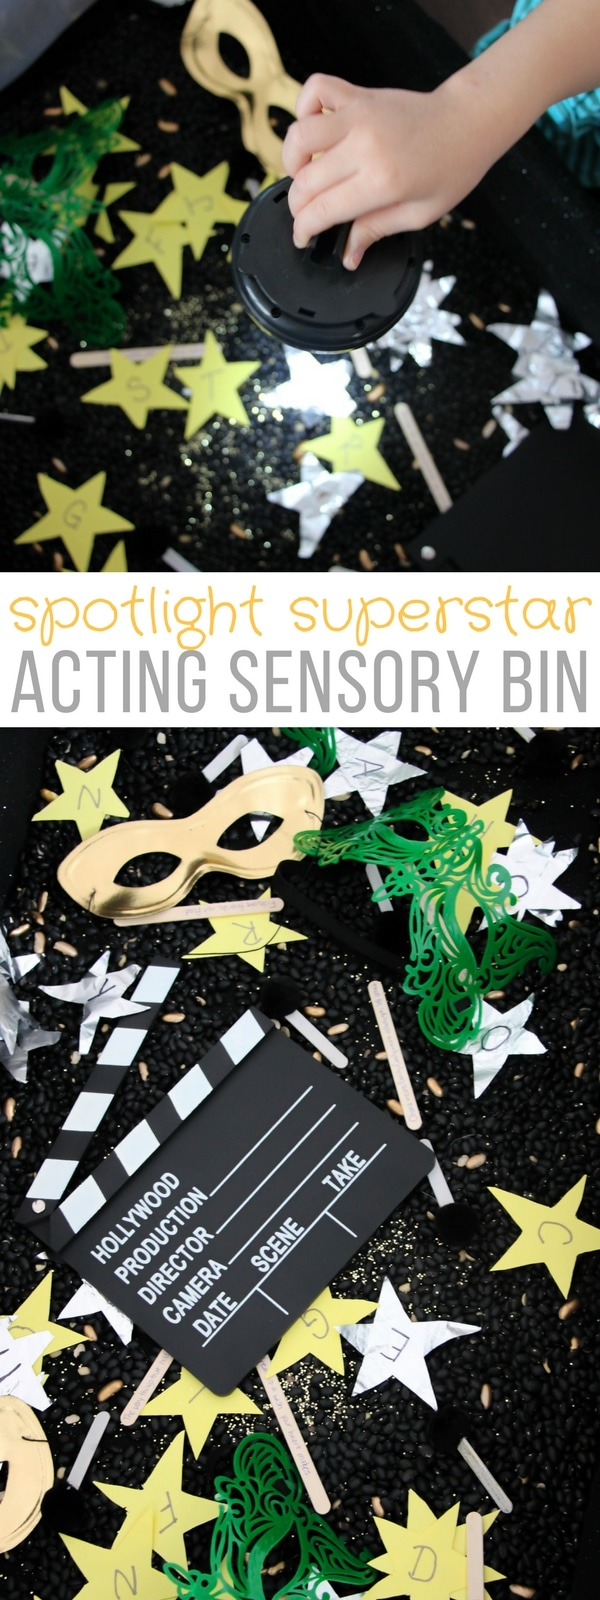 Create a spotlight superstar sensory bin! Combine literacy with the glitz and glamor of the spotlight in this fun, brightly colored sensory bin.